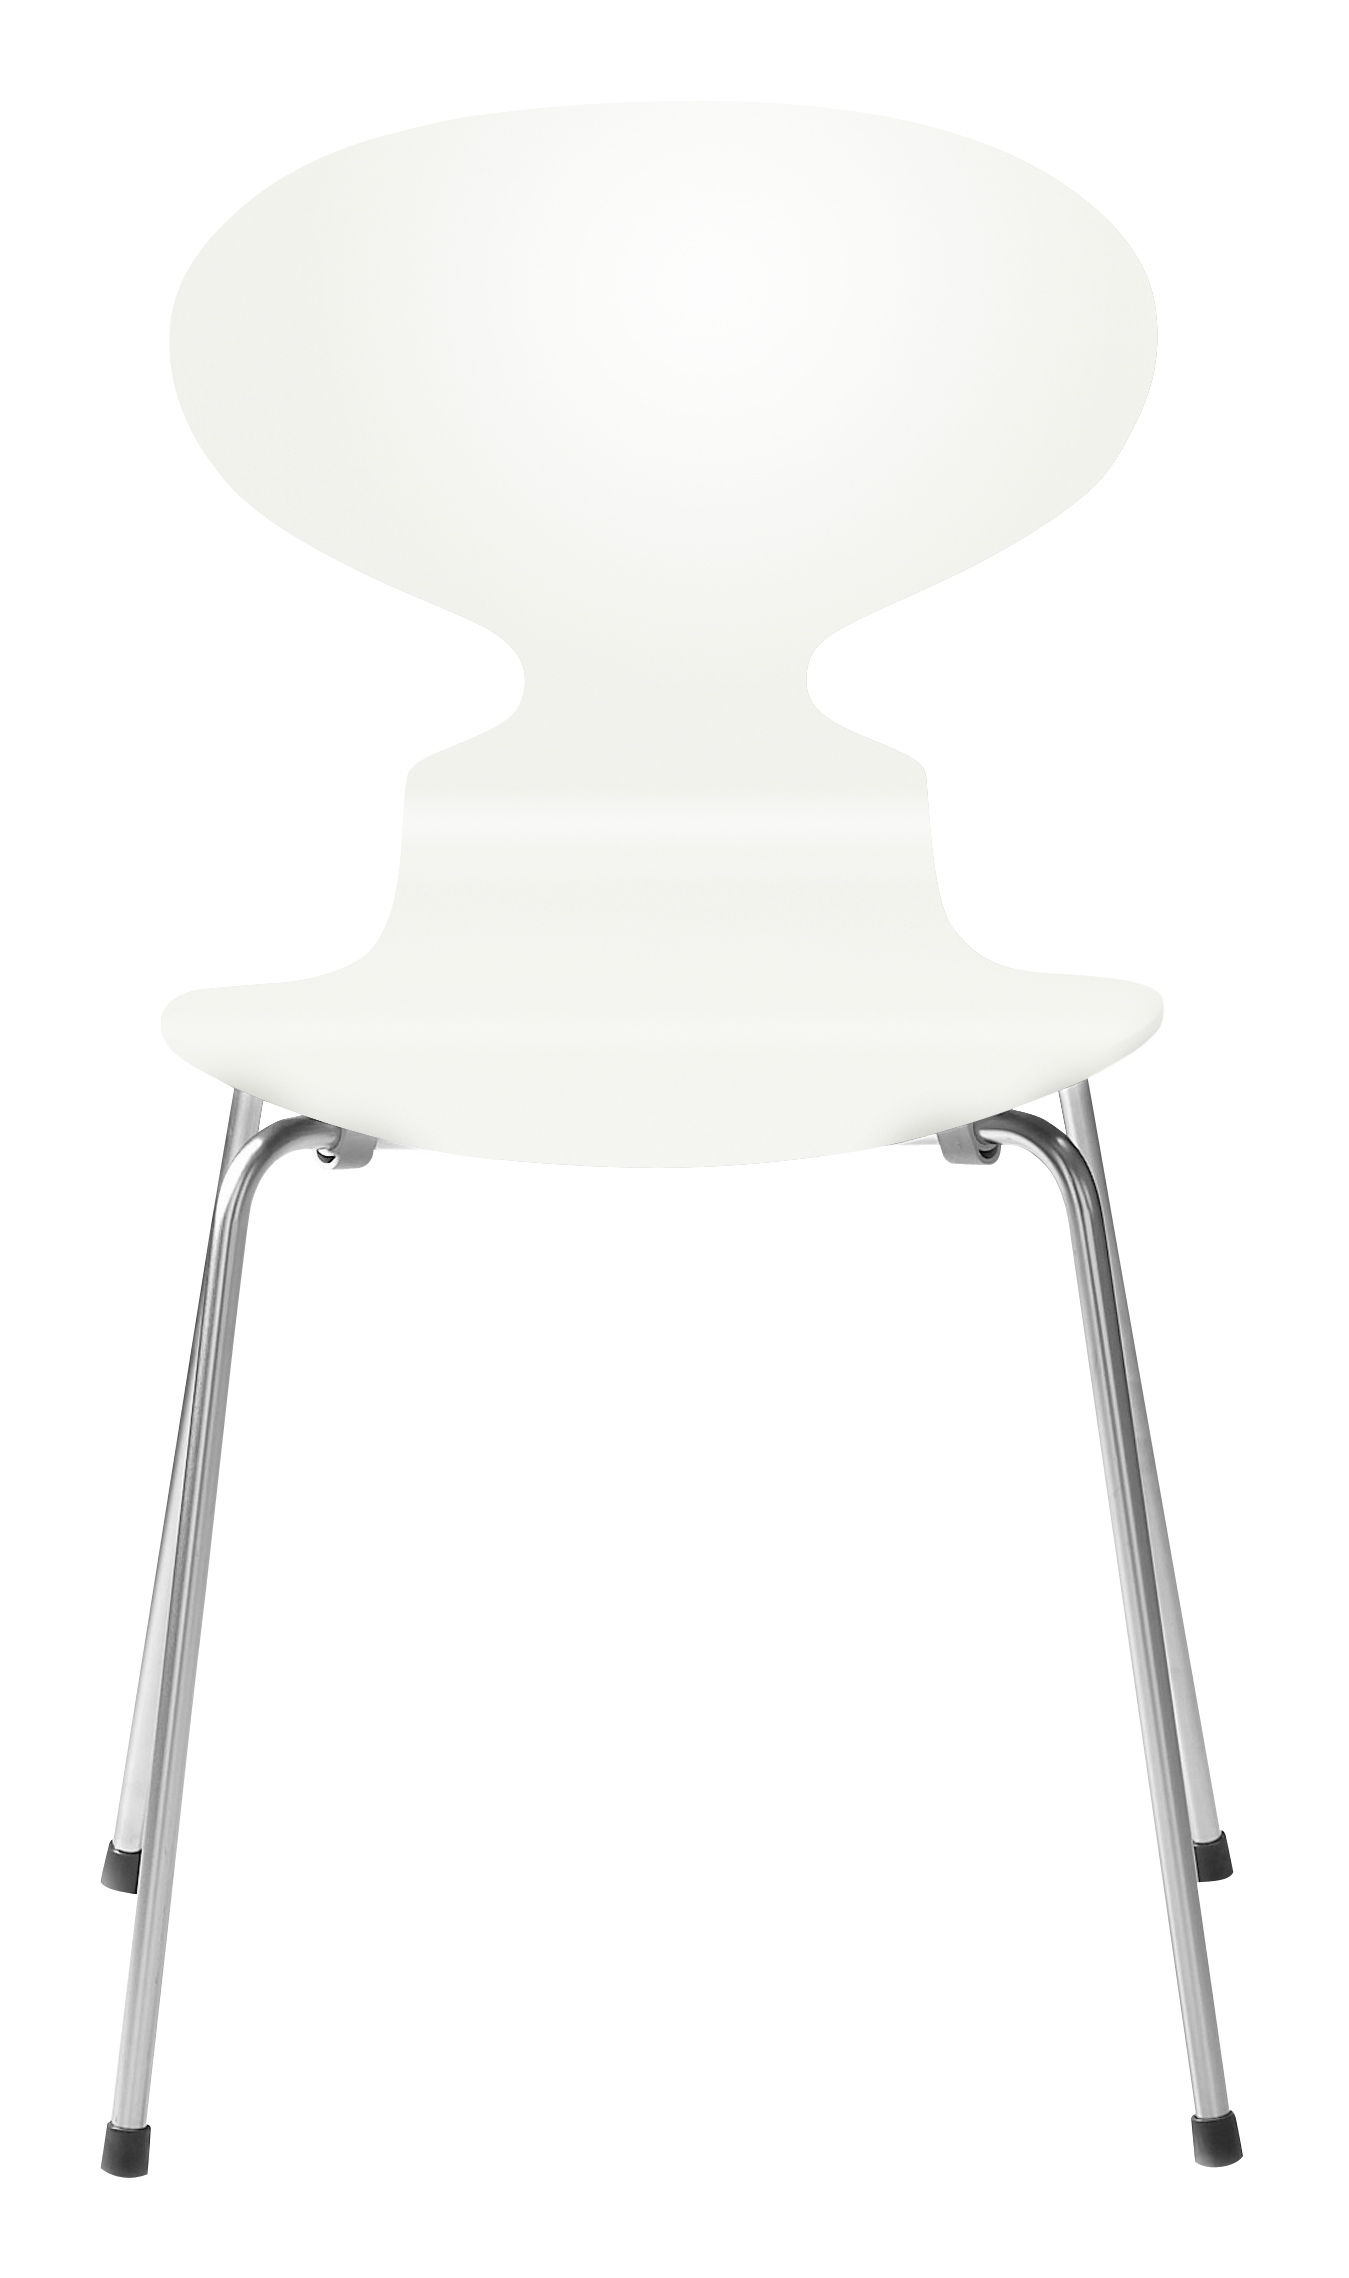 Furniture - Chairs - Fourmi Stacking chair - Lacquered wood by Fritz Hansen - White lacquered - Lacquered plywood, Steel